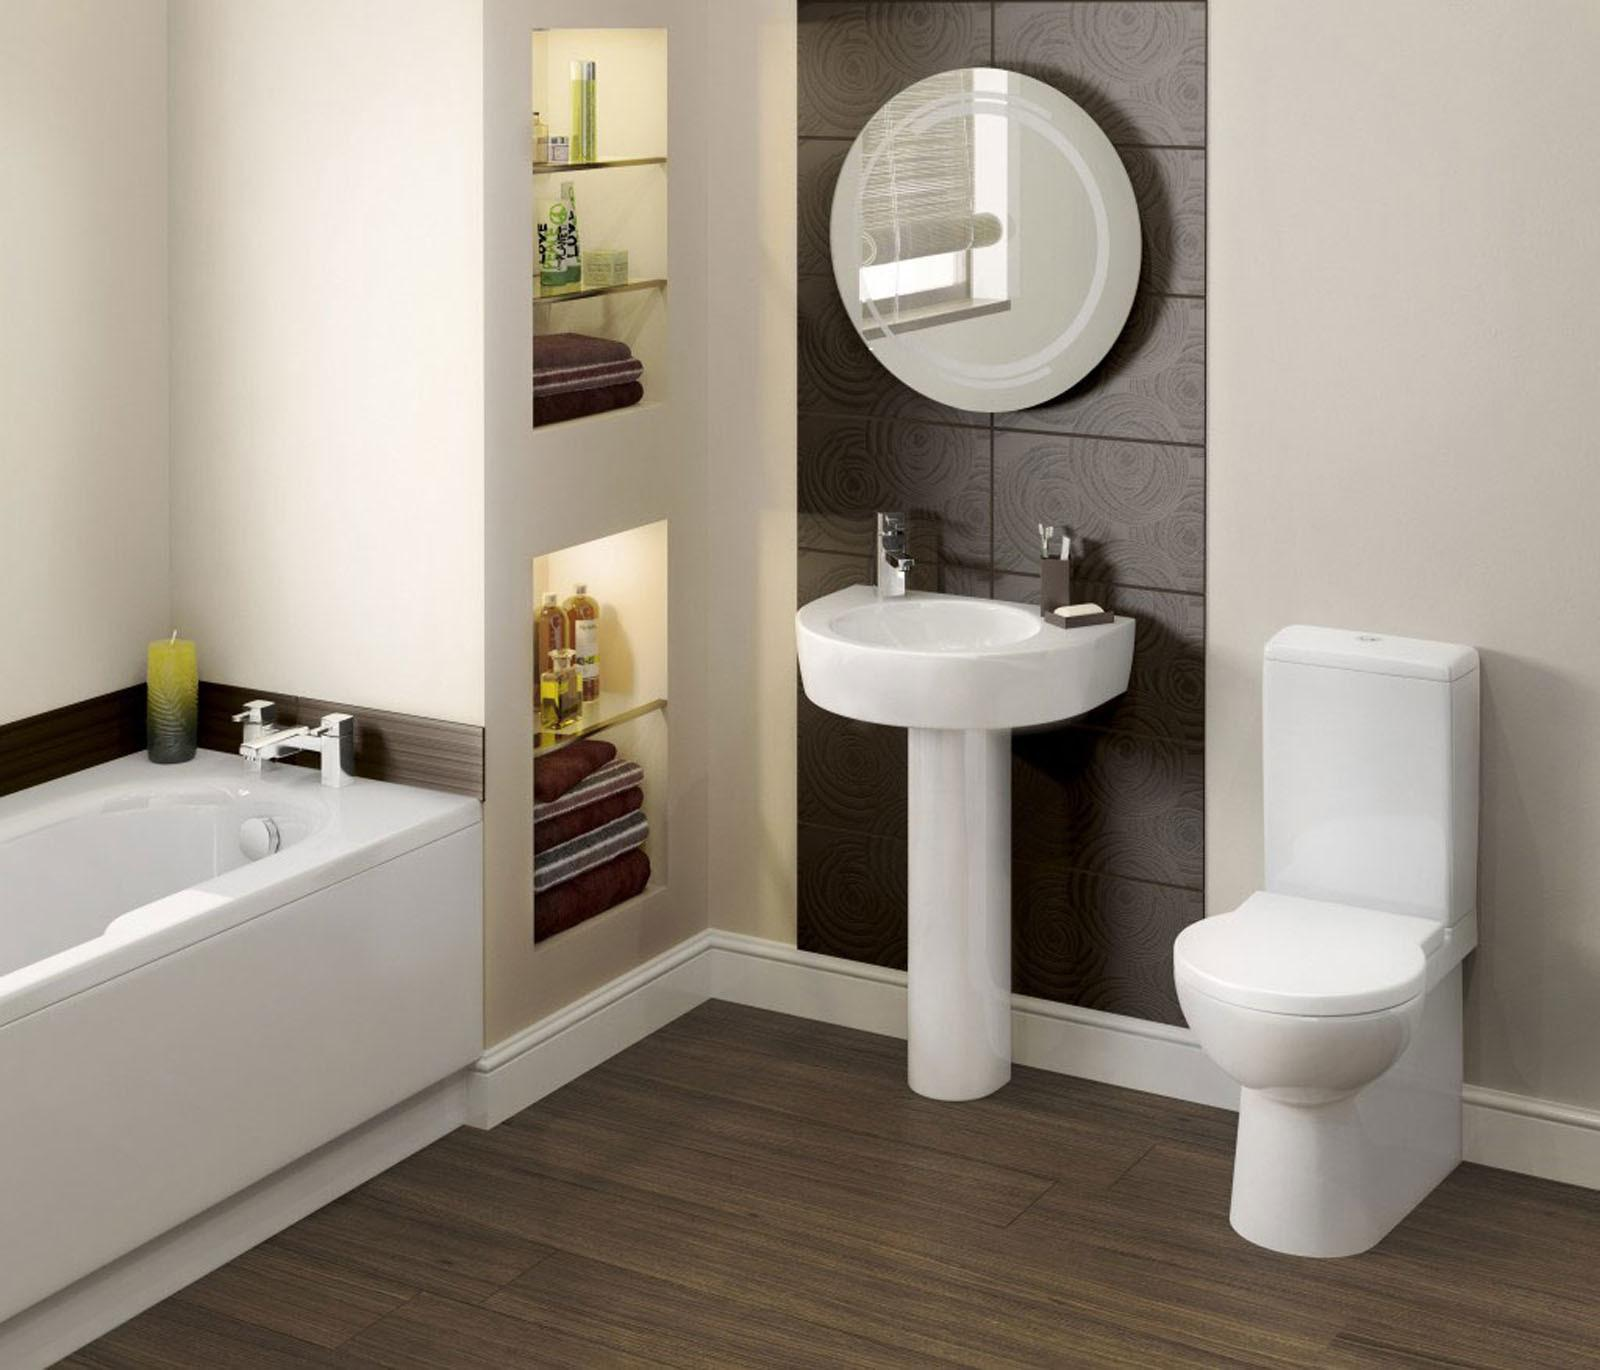 Home Design Ideas Inspiring Small Bathroom Storage